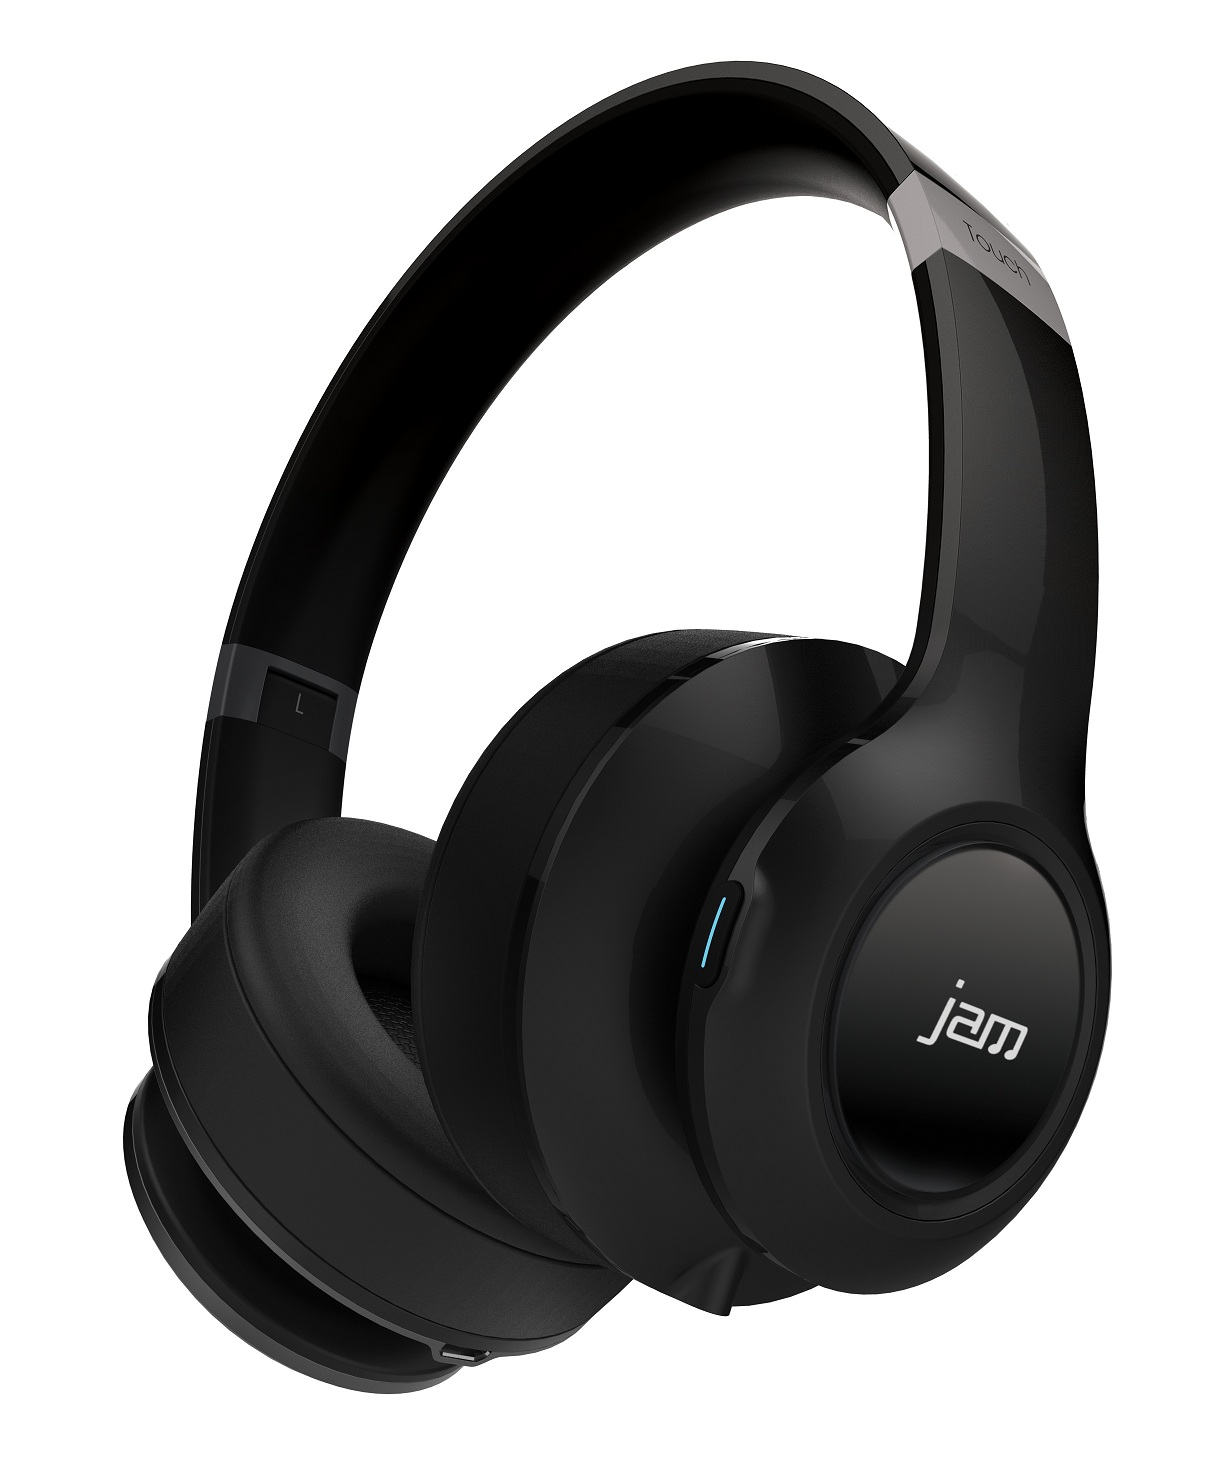 jam transit touch rechargeable wireless bluetooth headphones on ear earphones ebay. Black Bedroom Furniture Sets. Home Design Ideas